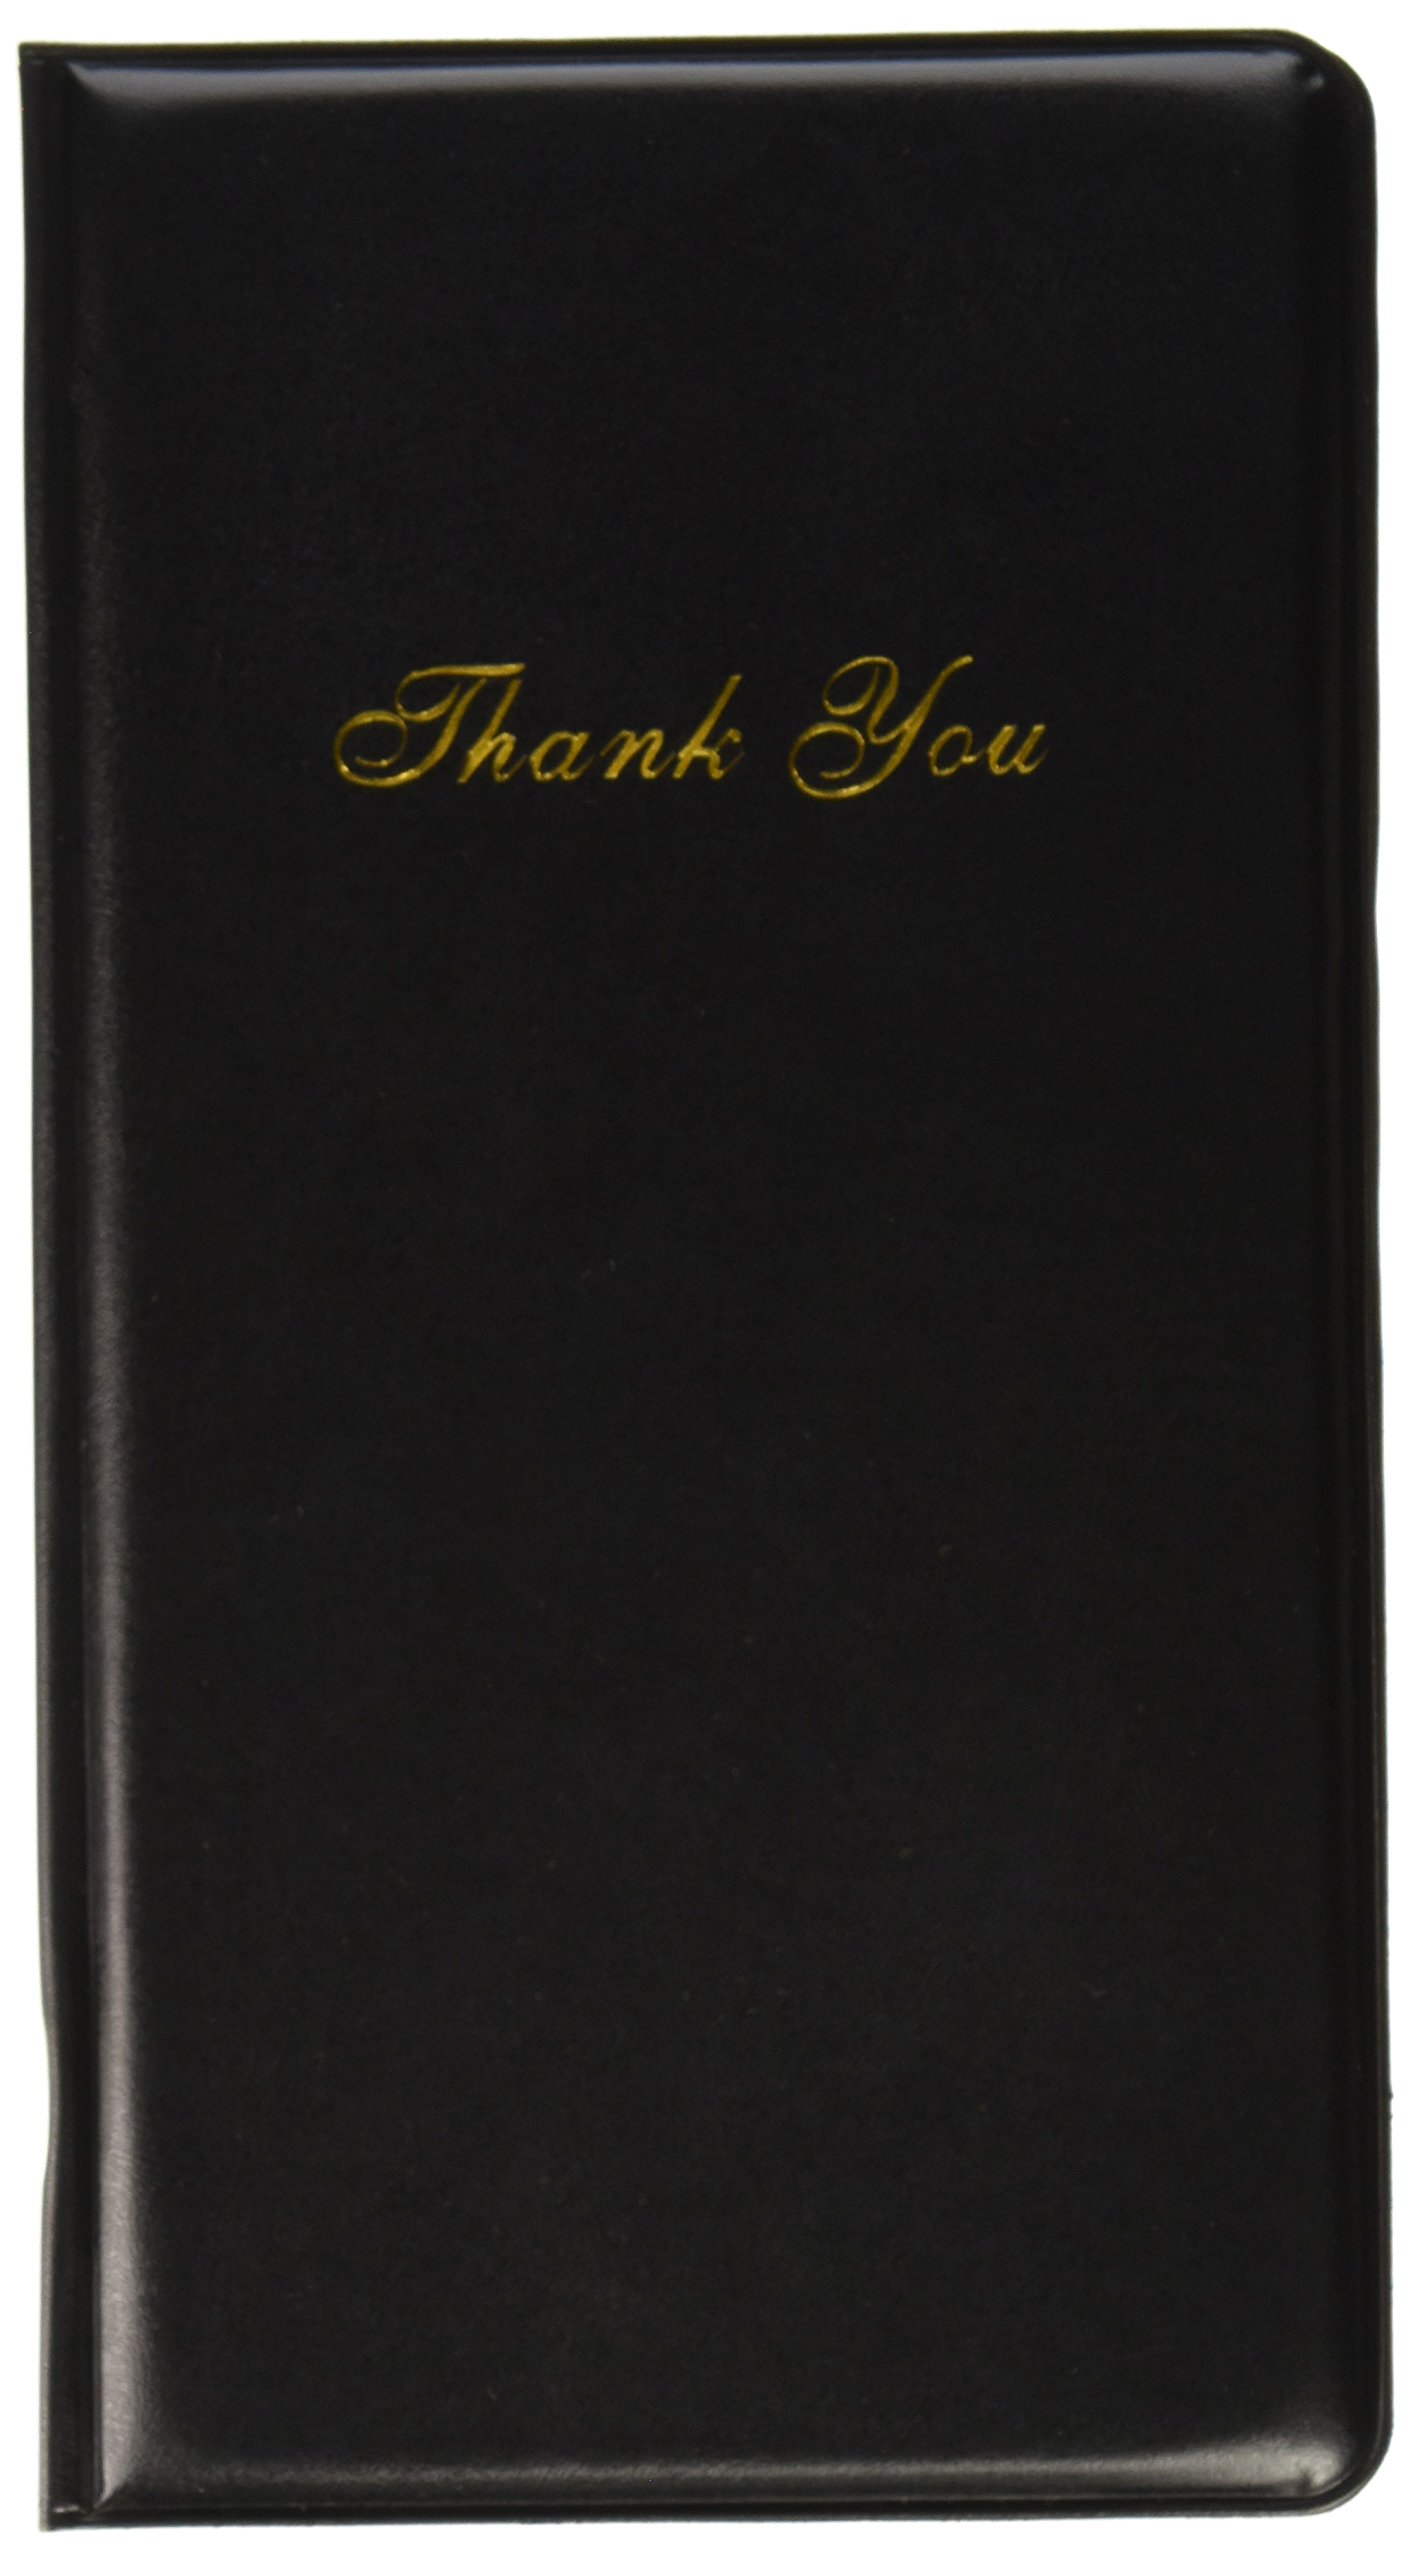 Book Style Fold Restaurant Menu Holder Covers, Black Synthetic Leather (10, Black)